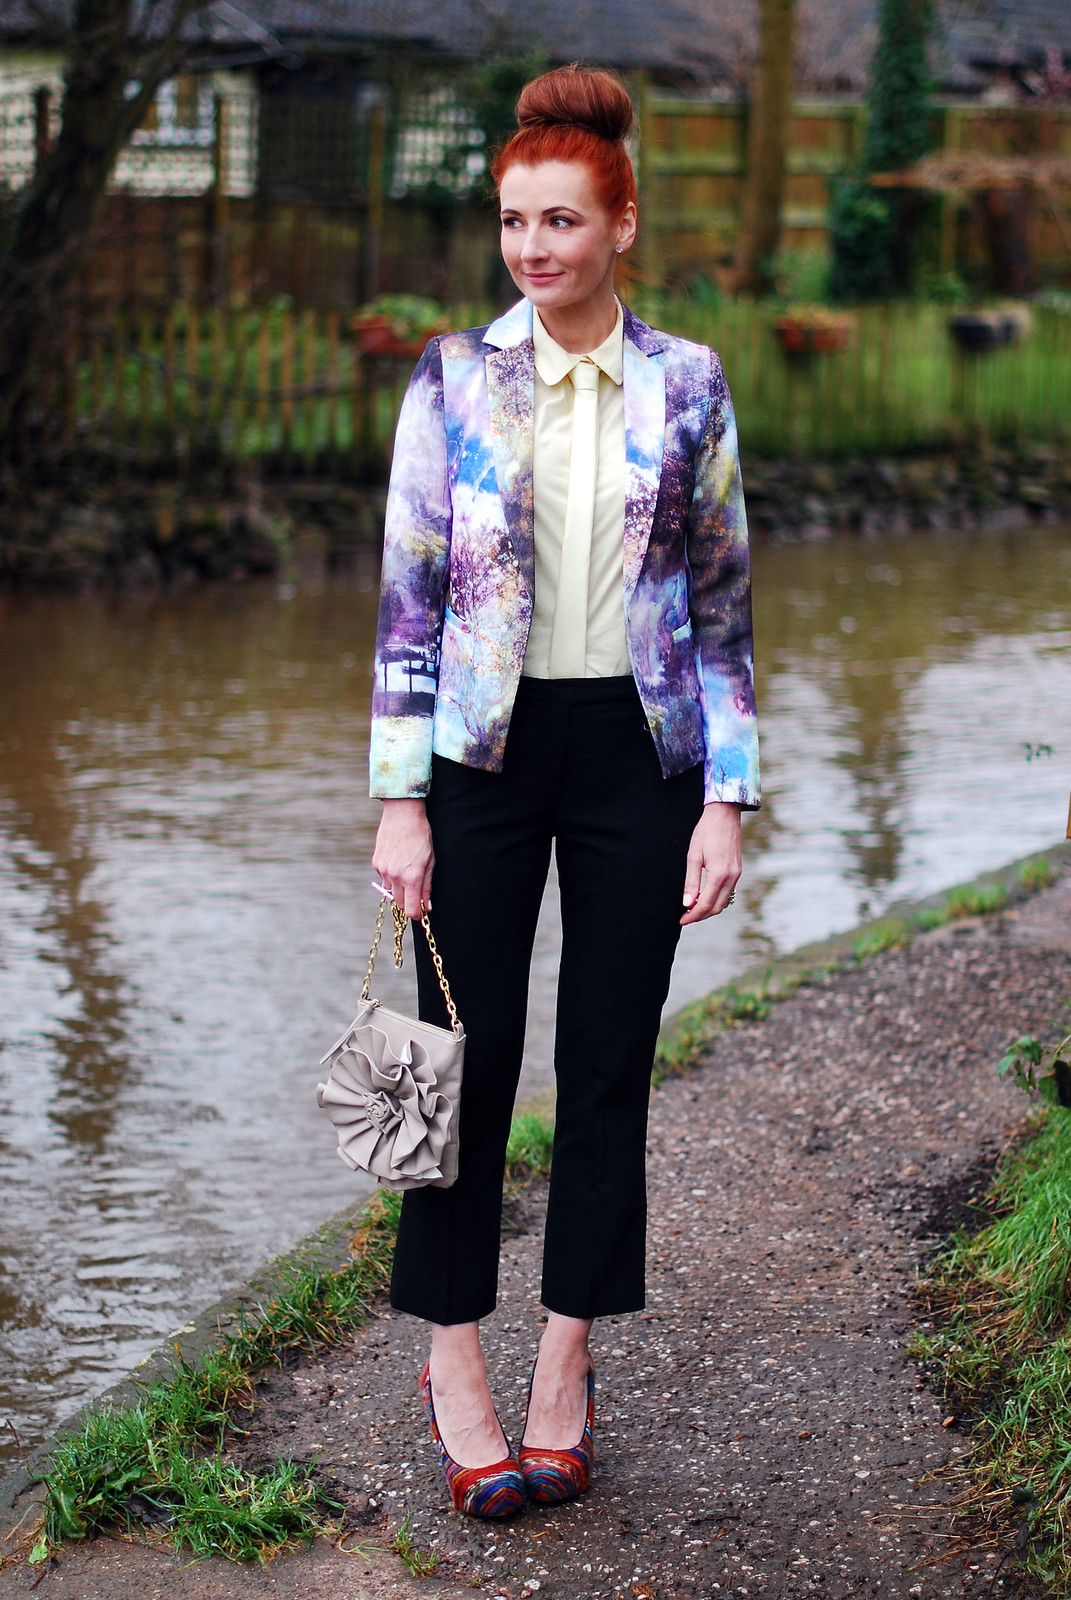 Patterned blazer with shirt & tie